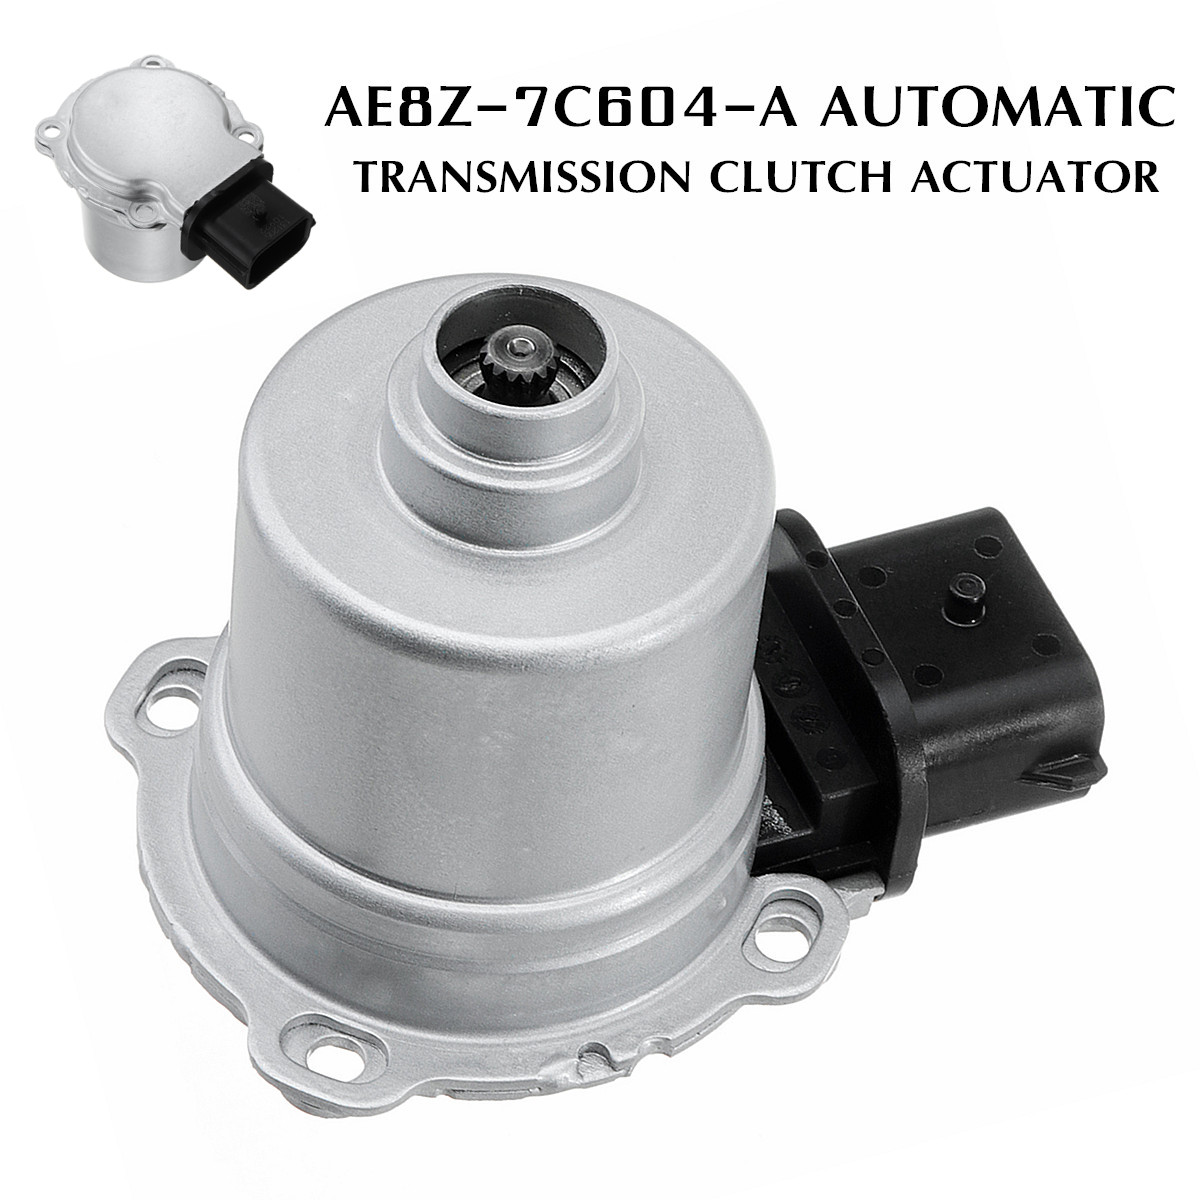 AE8Z-7C604-A Automatic Transmission Clutch Actuator For Ford Fiesta-Focus 11-17 67x95x77mm Direct Replacement Left on VehicleAE8Z-7C604-A Automatic Transmission Clutch Actuator For Ford Fiesta-Focus 11-17 67x95x77mm Direct Replacement Left on Vehicle